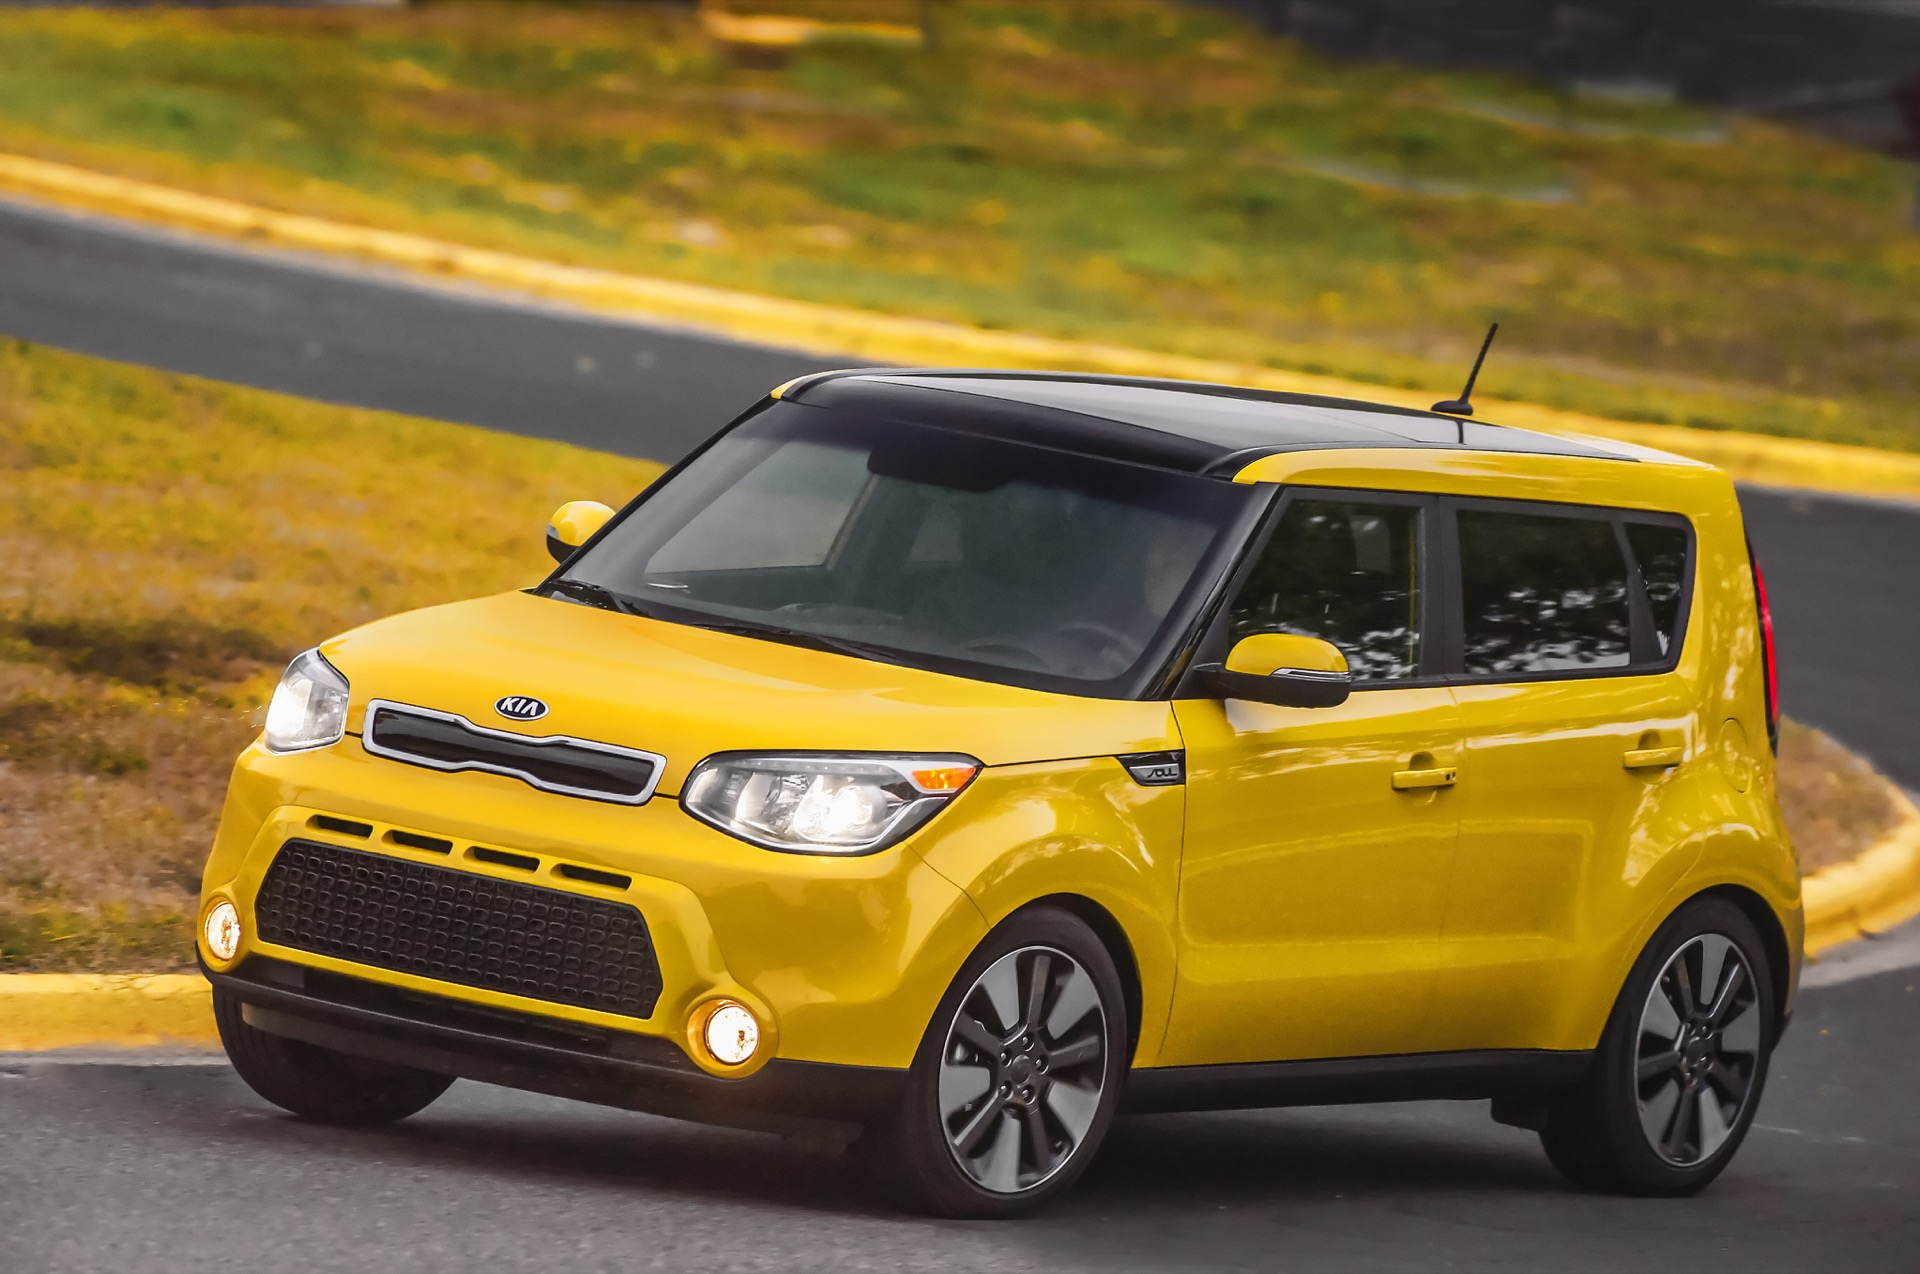 new and used kia soul prices photos reviews specs the car connection. Black Bedroom Furniture Sets. Home Design Ideas